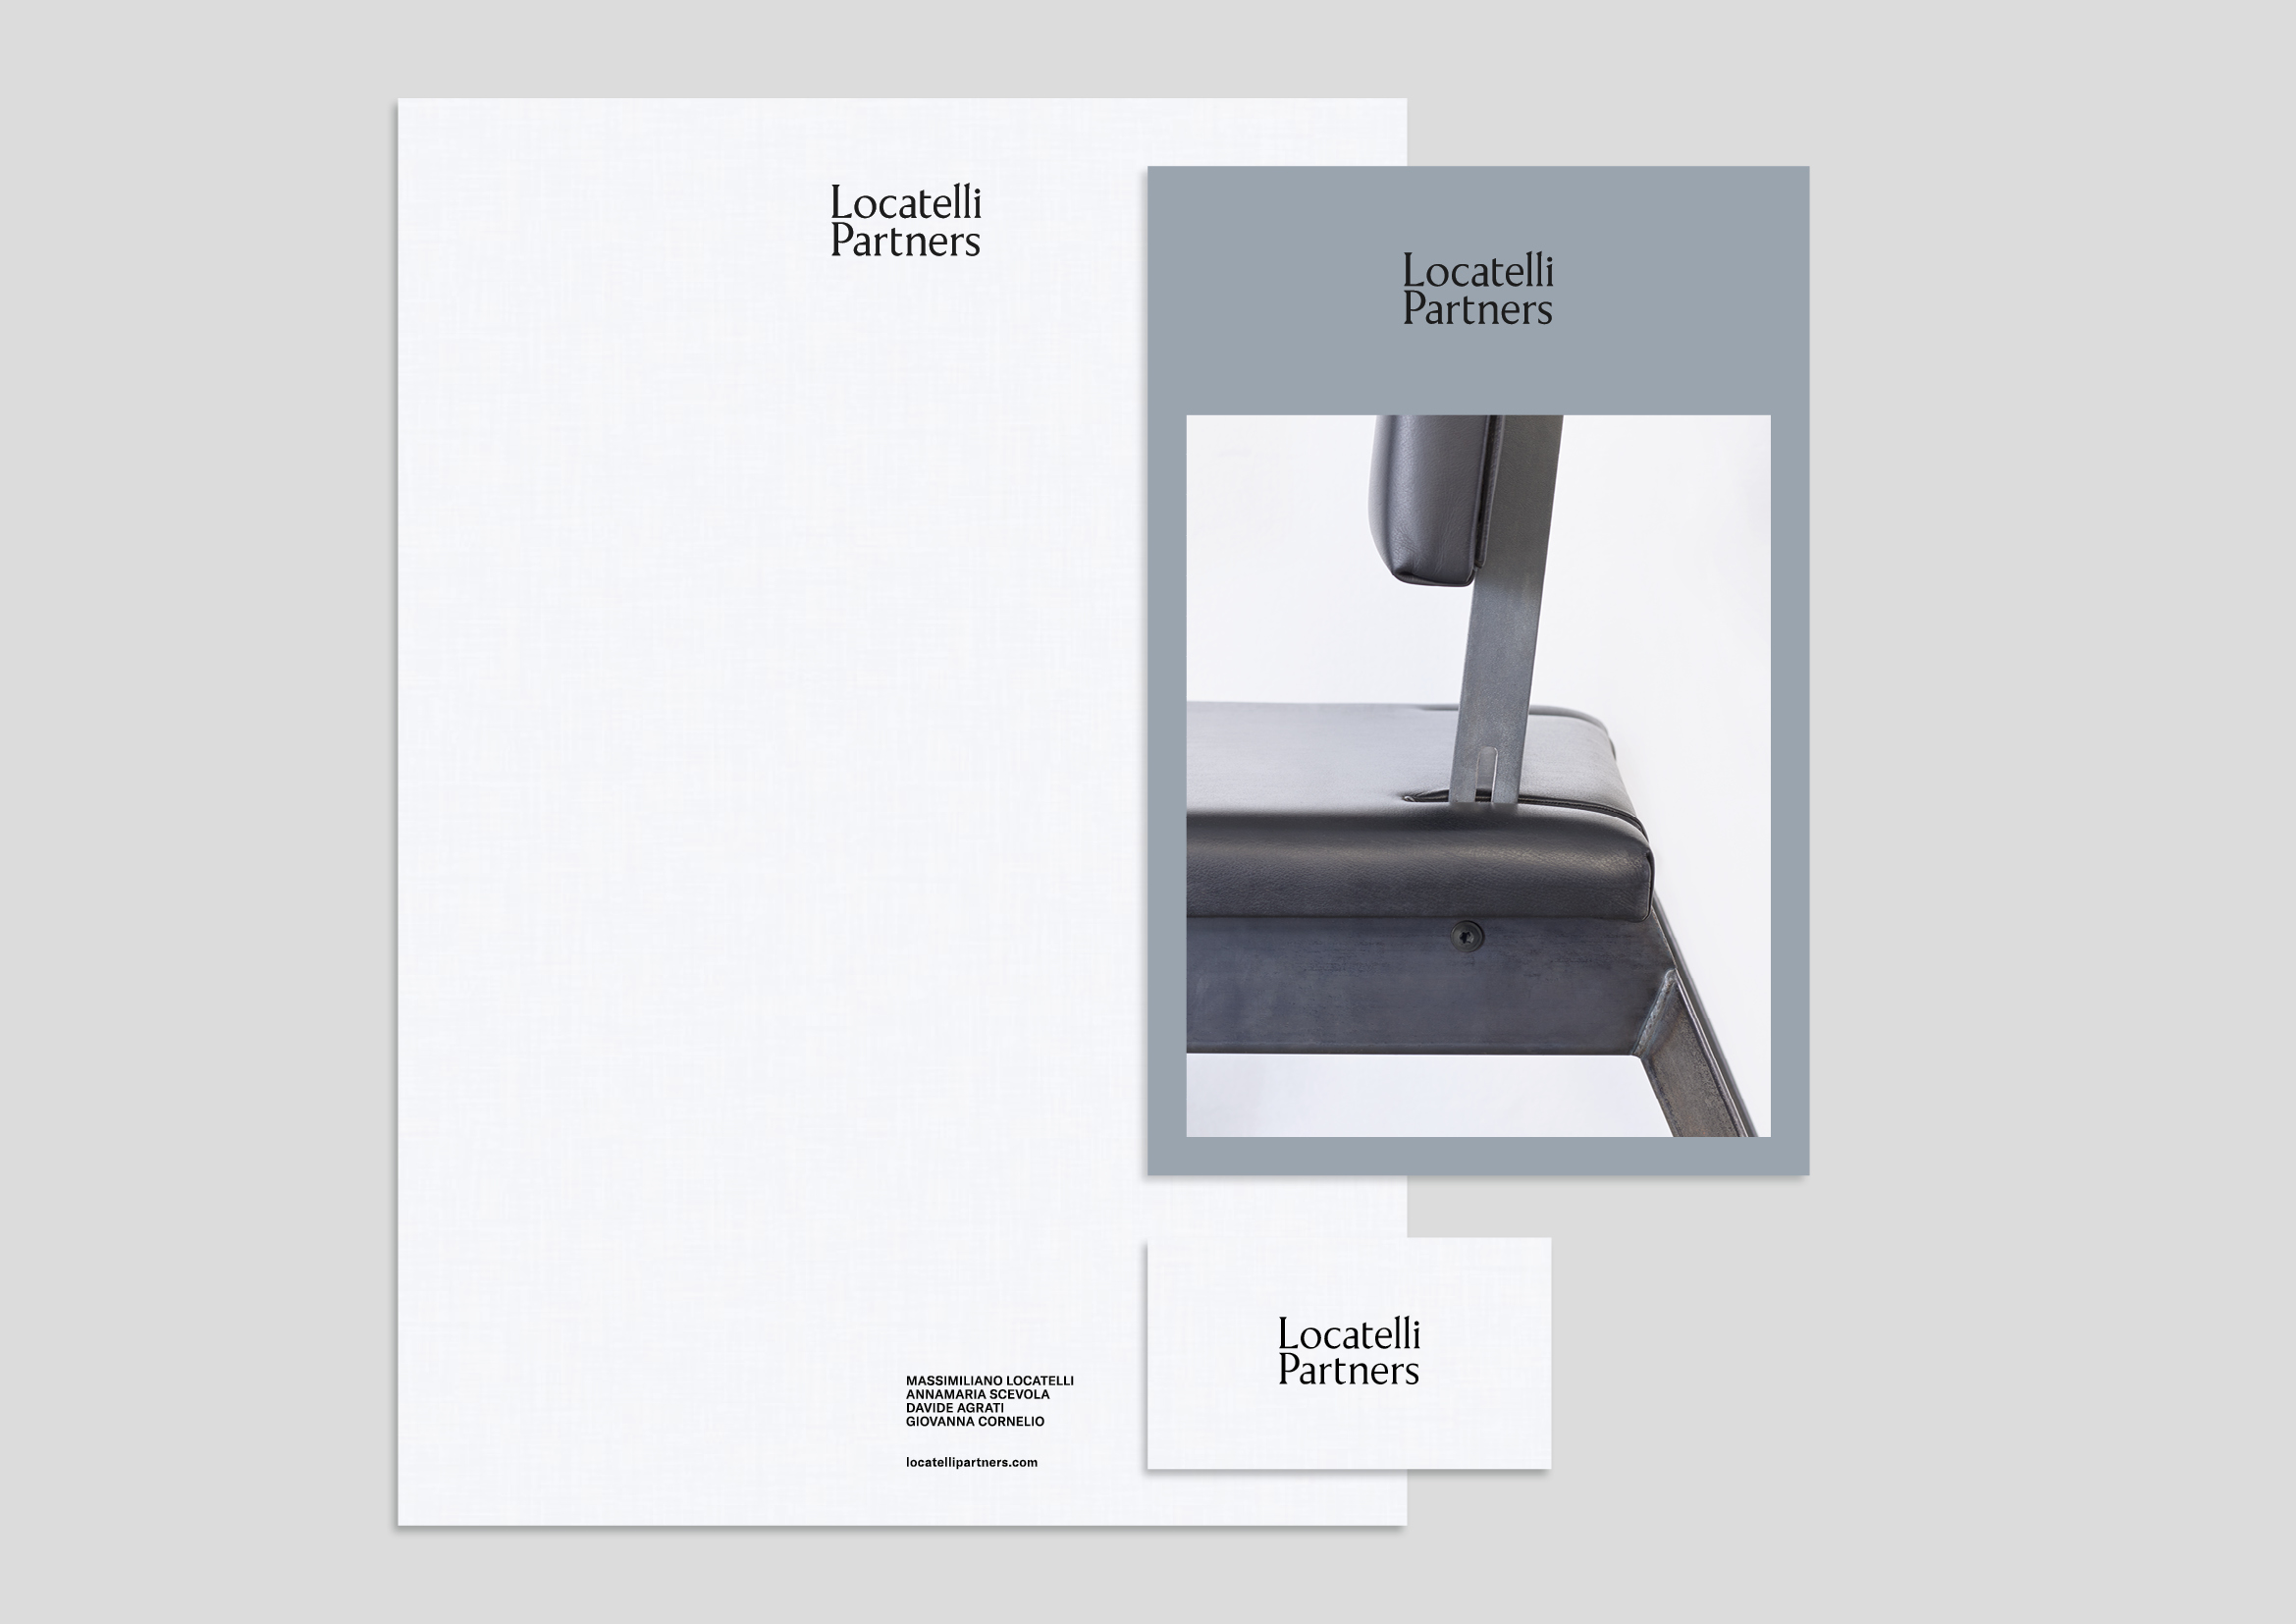 nicoletta-dalfino-locatelli-partners-stationary